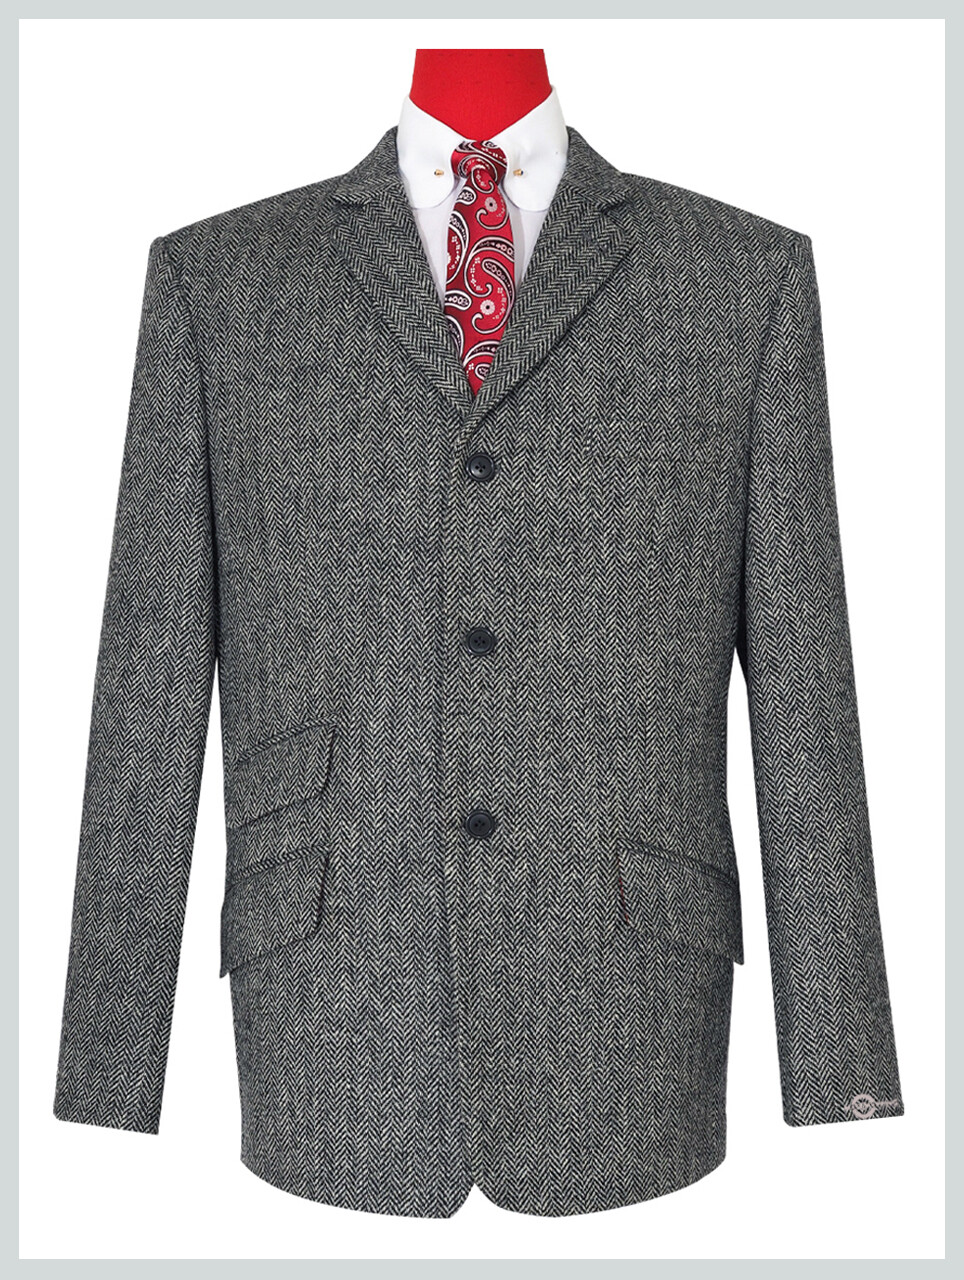 Grey Herringbone Tweed Jacket For Man